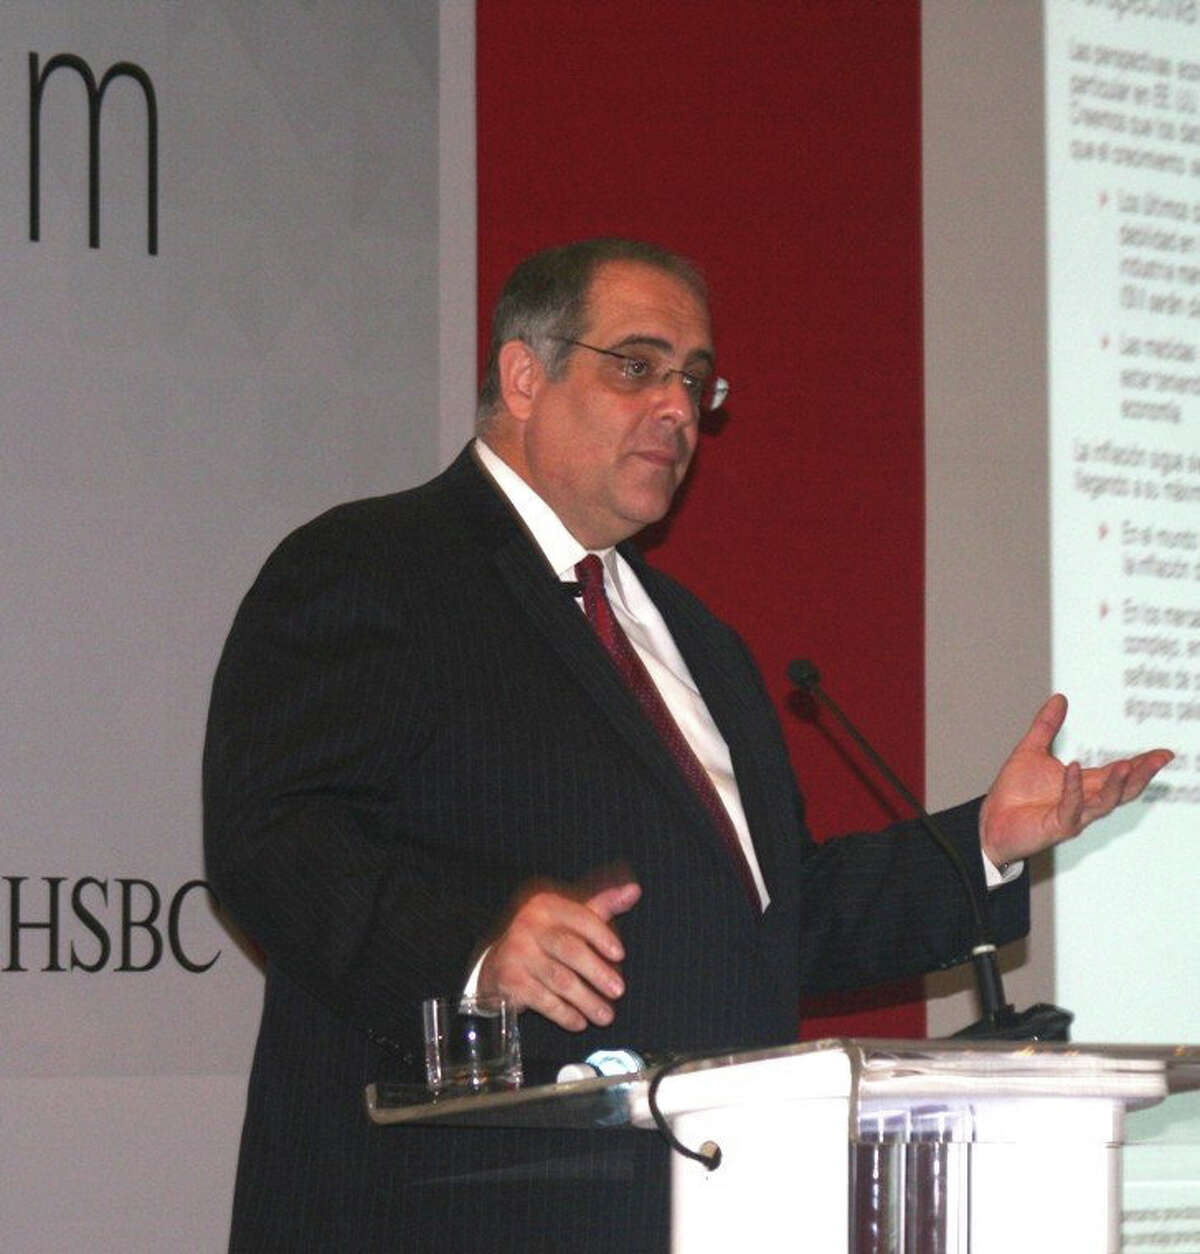 José A. Rasco, chief investment strategist at HSBC Private Bank Americas, will address the Senior Men's Club of New Canaan Friday, May 18, 2012.